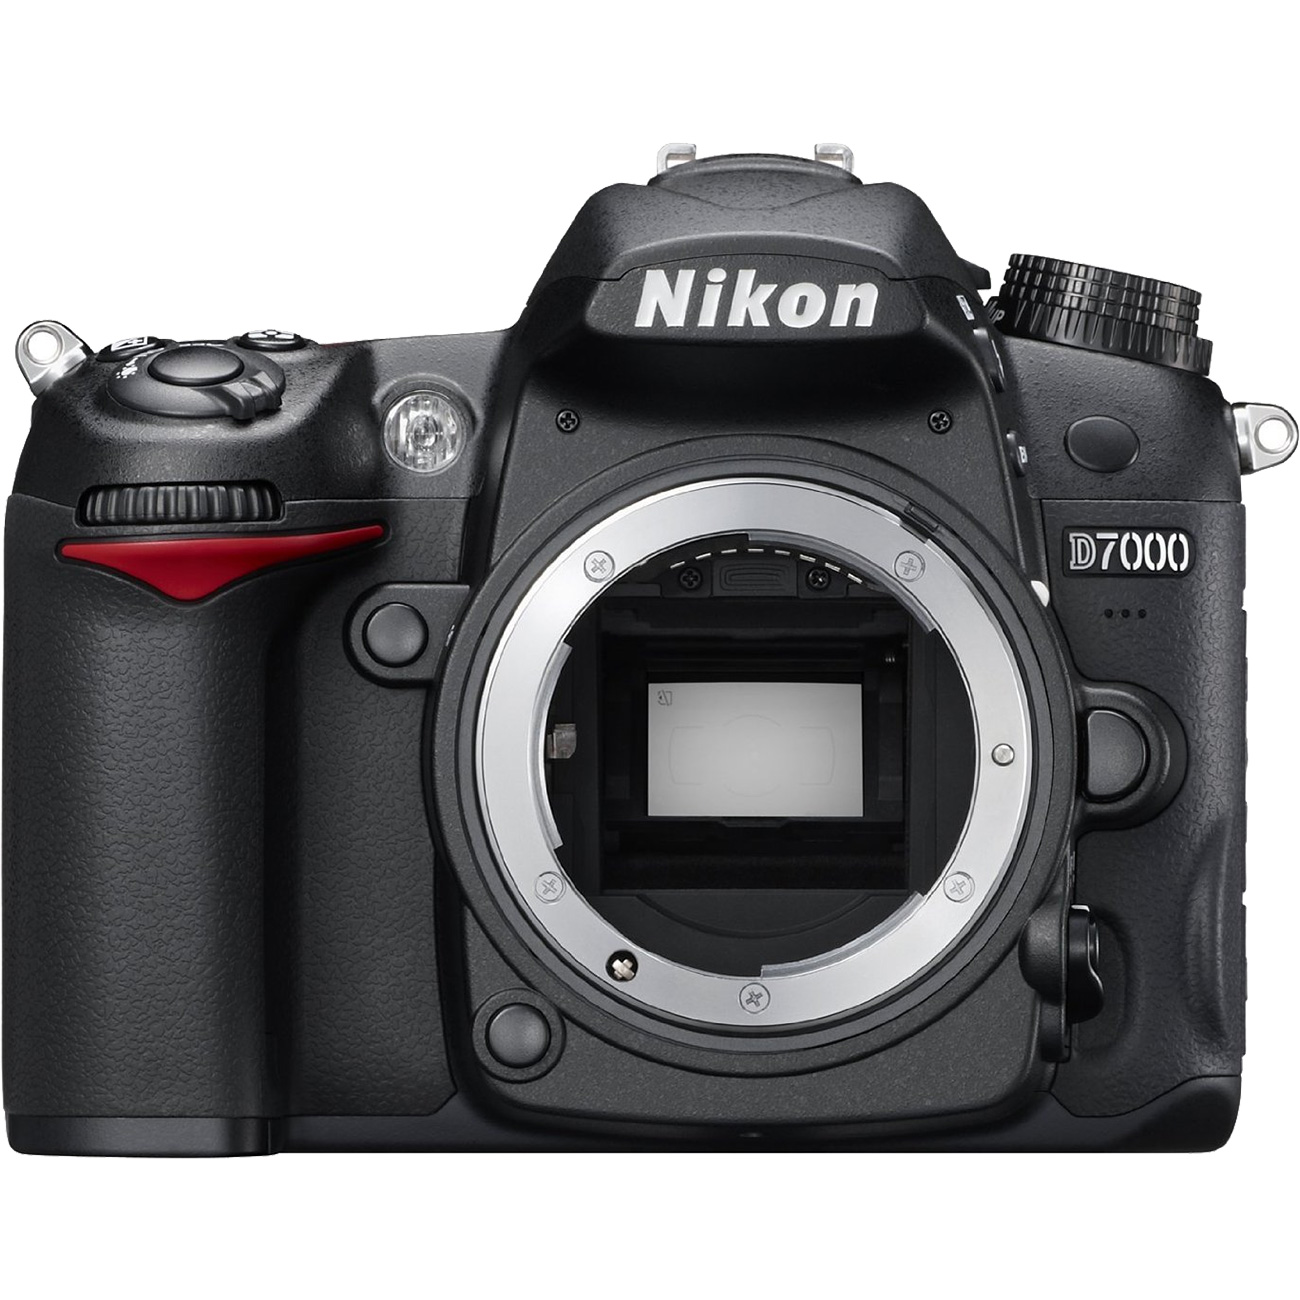 Nikon D7000 Digital SLR Camera Body - Factory Refurbished includes Full 1 Year Warranty